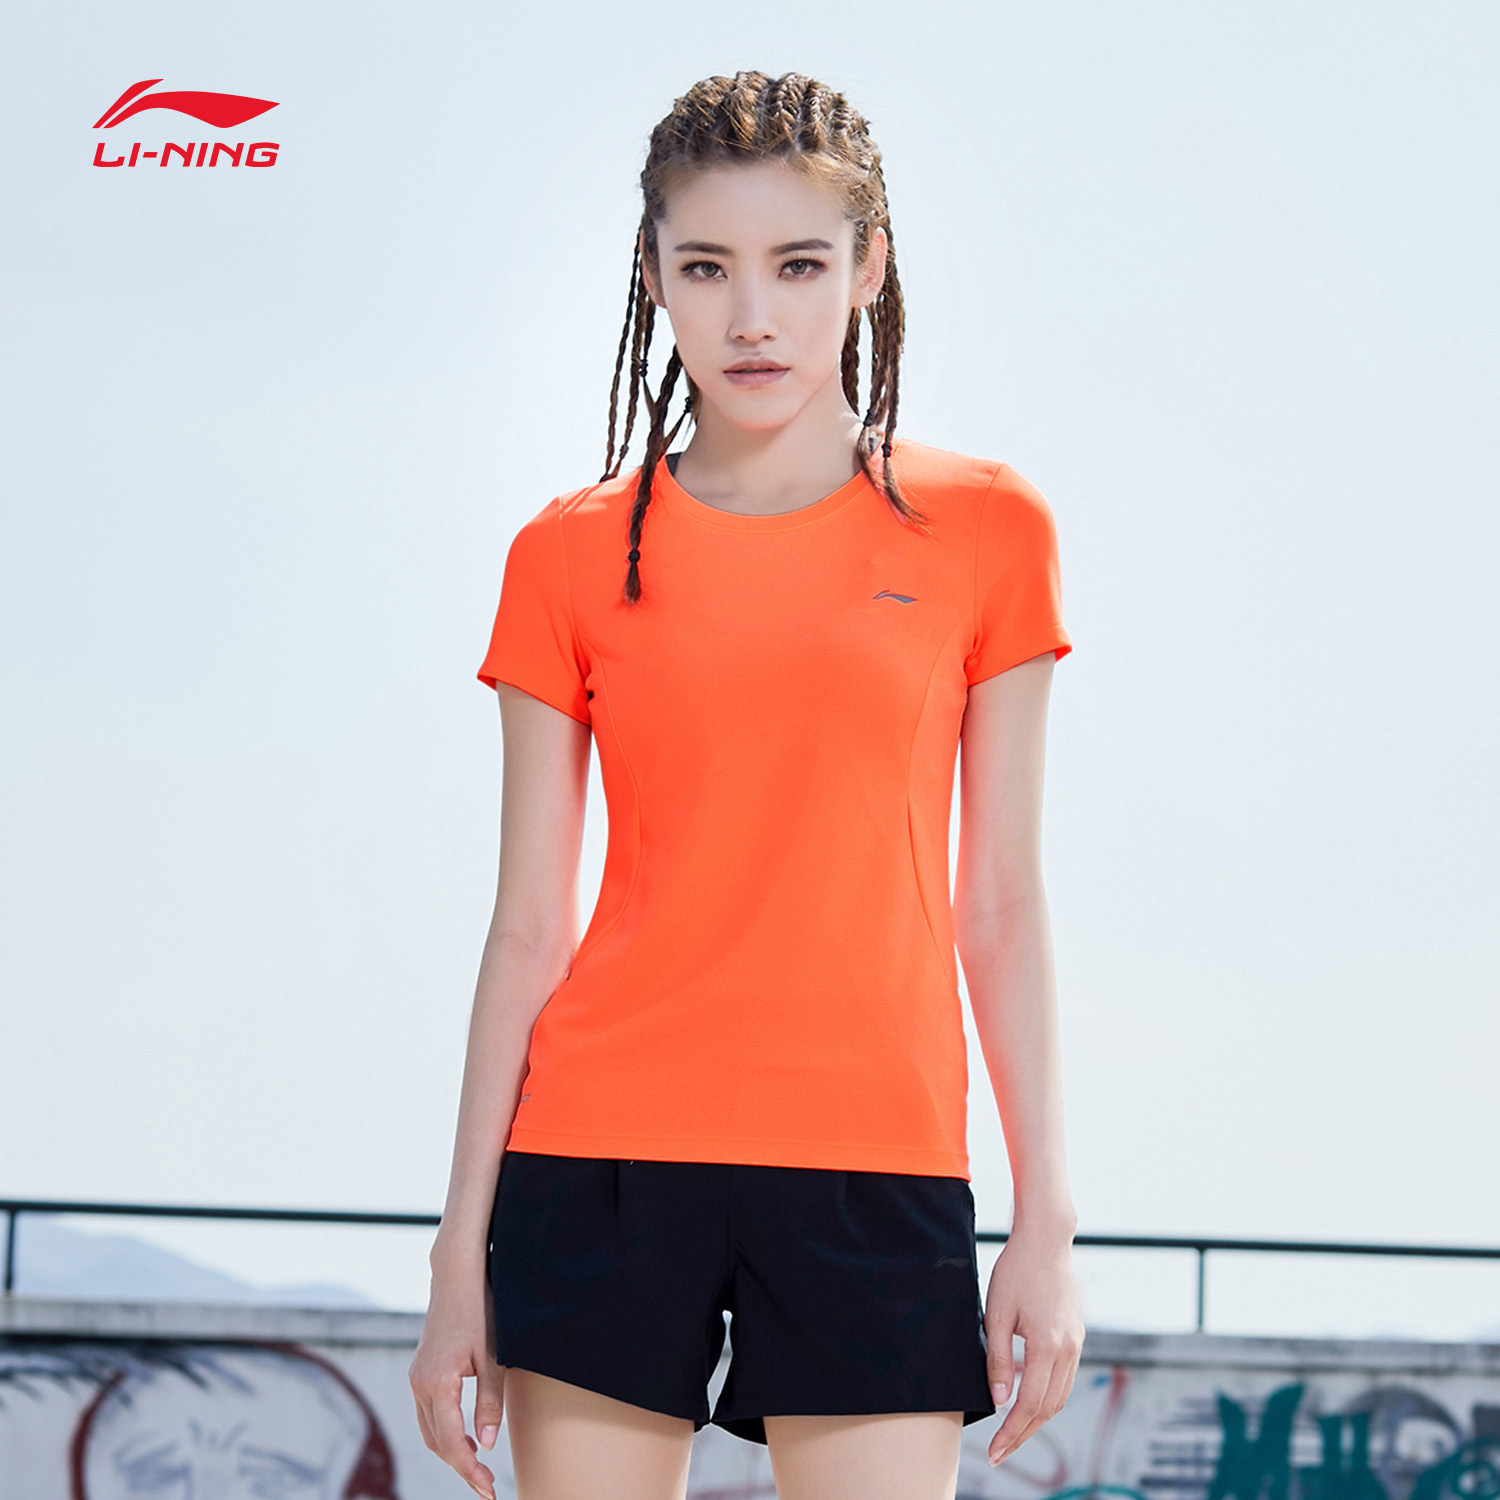 Li Ning short-sleeved T-shirt lady comprehensive training clothes summer new elastic fitness running fast dry breathable sportswear.